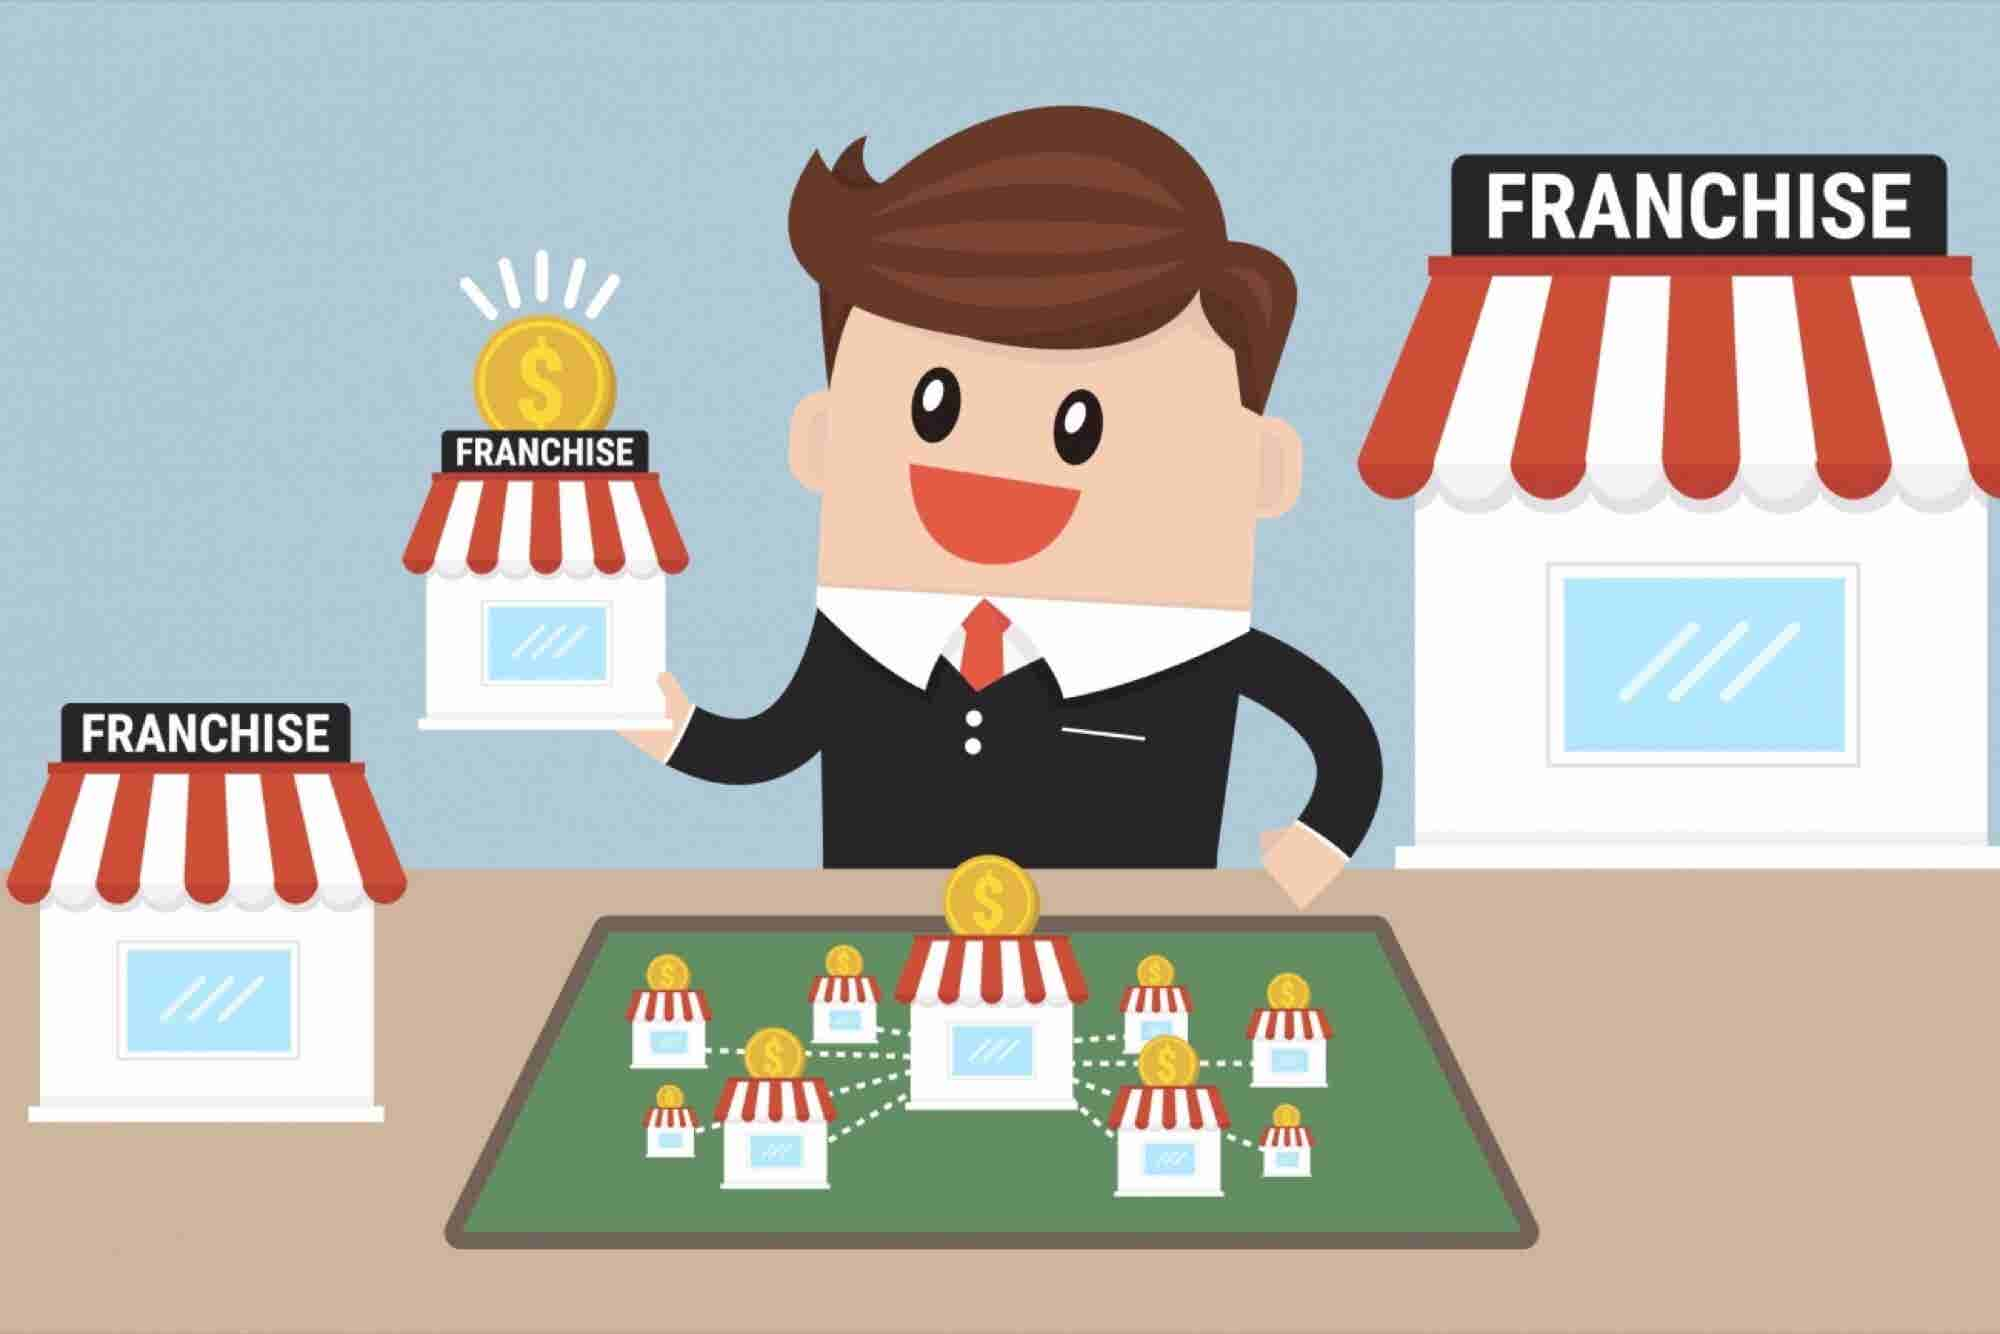 DIVINITI Explains How to Grow Your Franchise Roots the Right Way